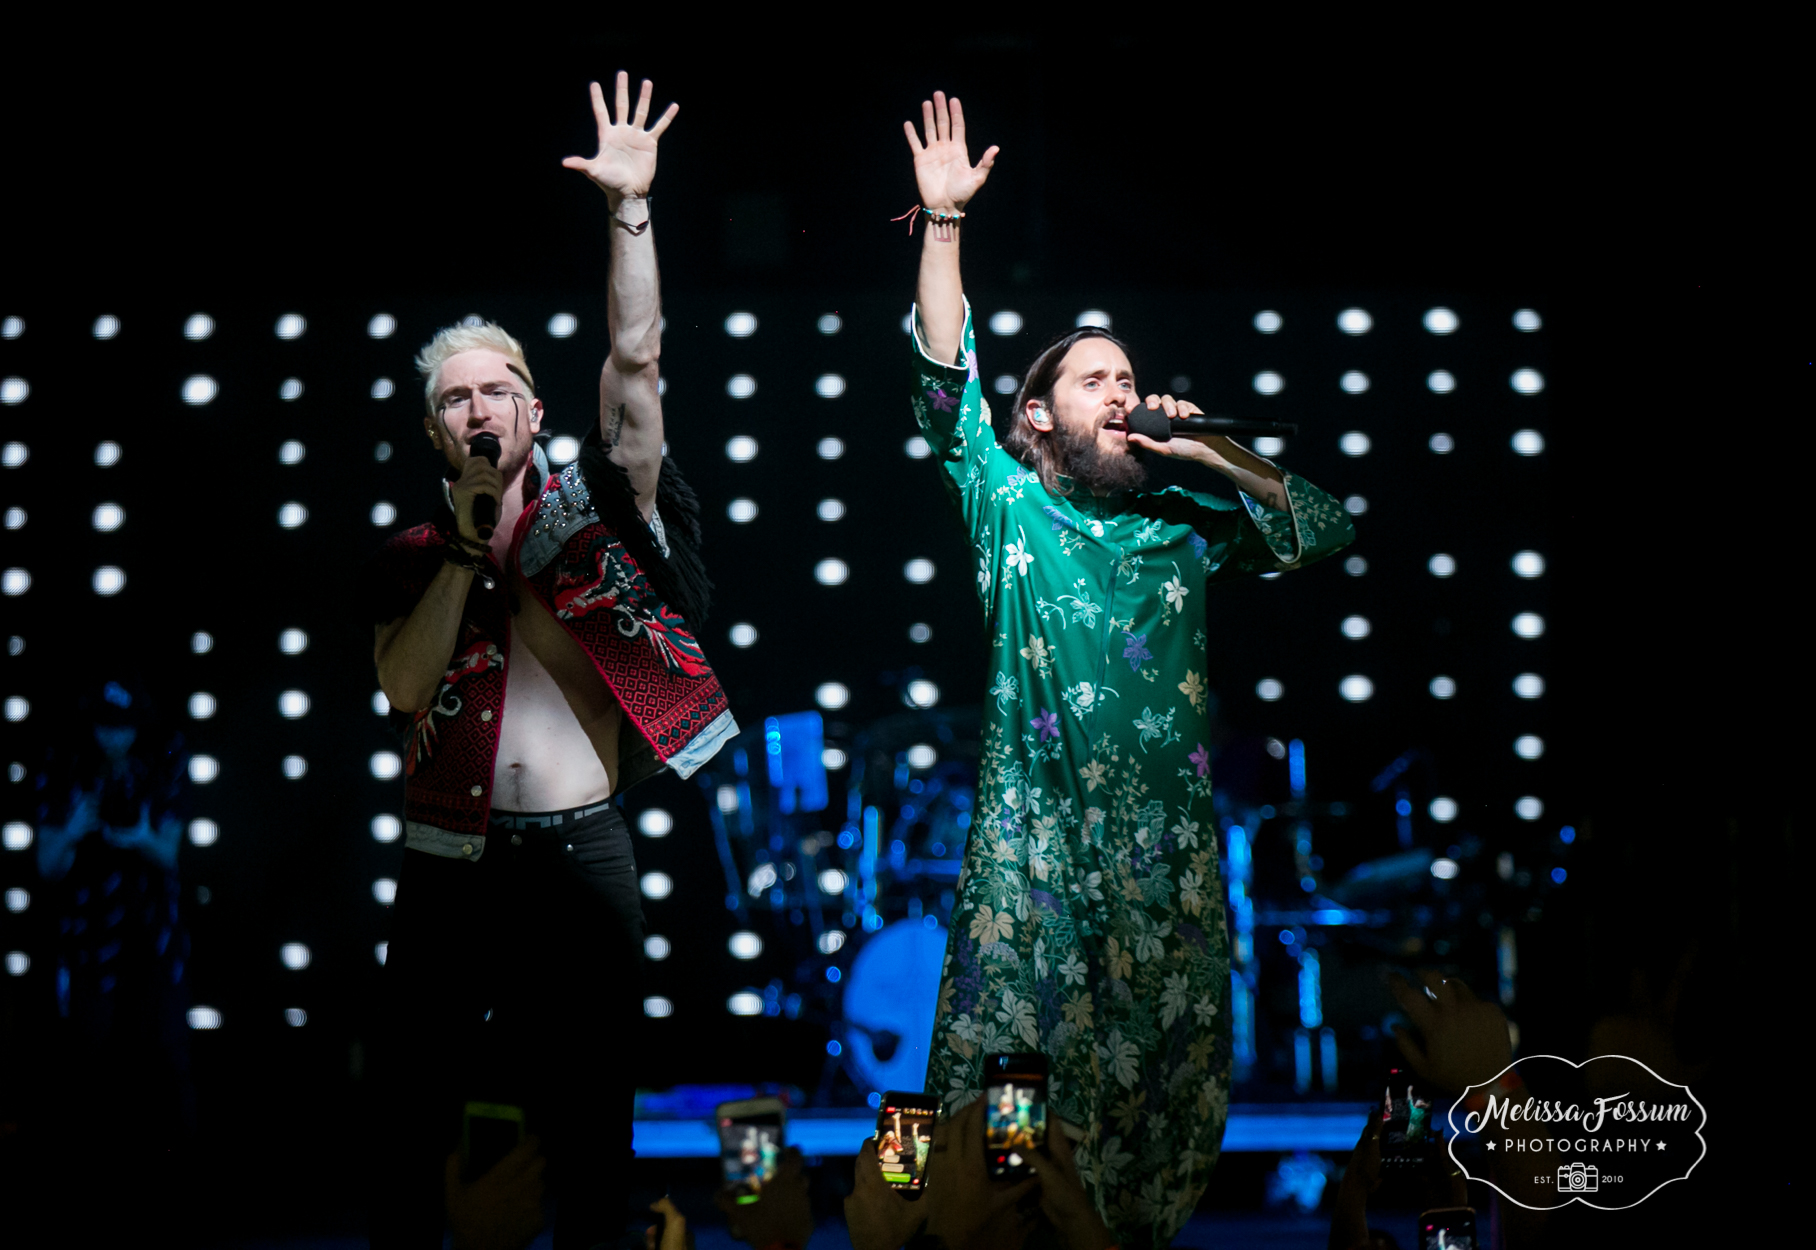 Jared Leto brings Walk The Moon's Nicholas Petricca on stage.